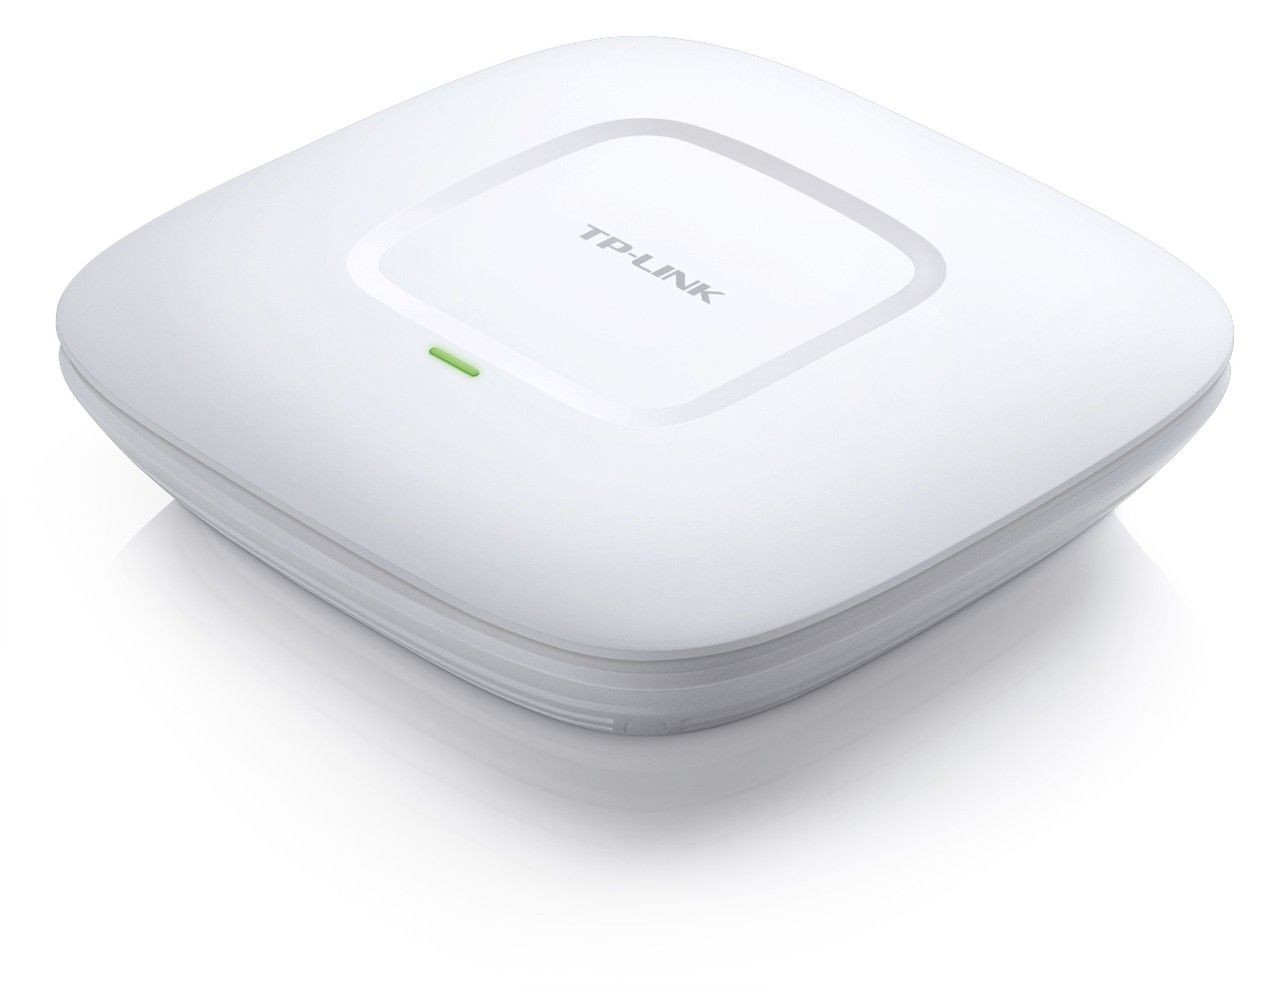 TP-Link EAP110 Wireless 802.11n/300Mbps AccessPoint PoE